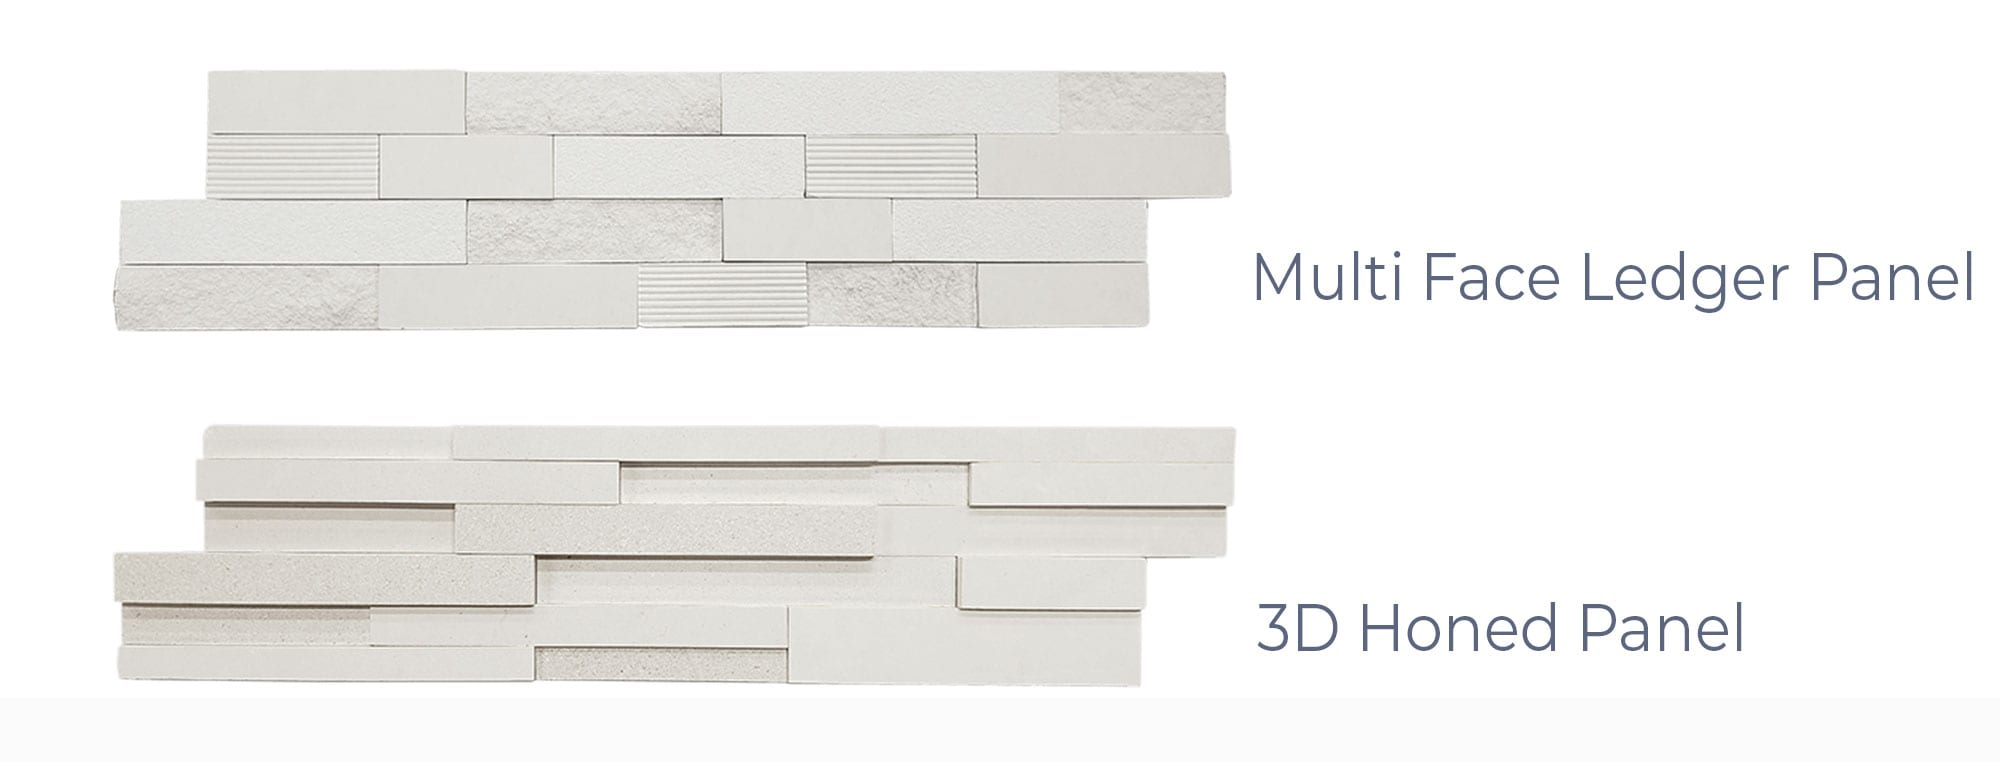 Stoneline-Group-Limra-Marble-Collection-Marble-Veneer-Multi-Face-3D-Honed-Ledger-Panel-Pictures